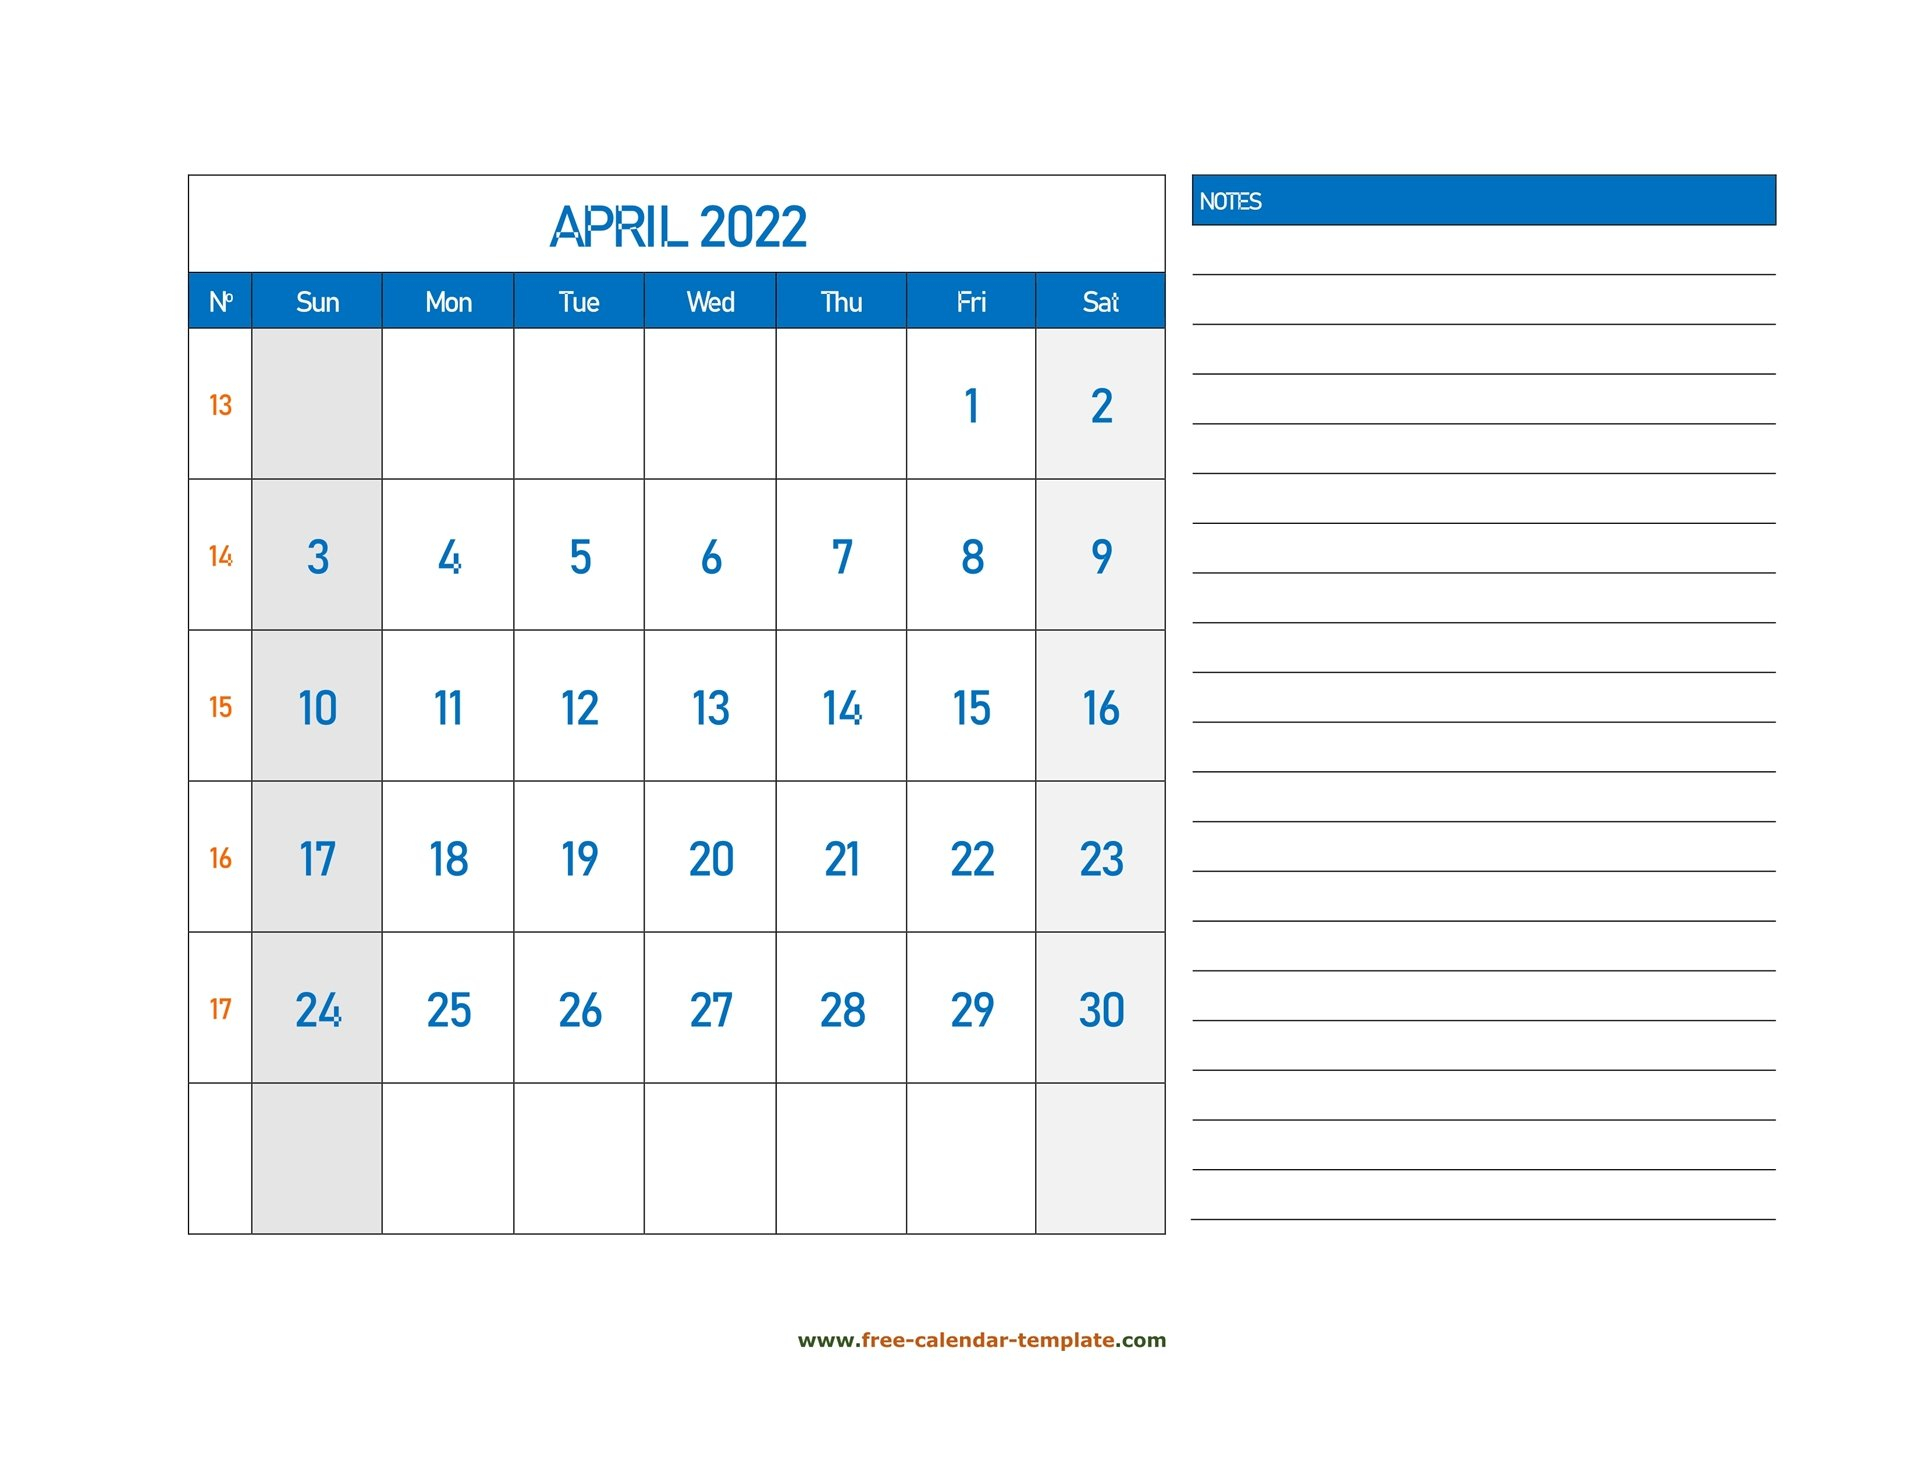 April Calendar 2022 Grid Lines For Holidays And Notes with Printable Calendar April 2022 Free